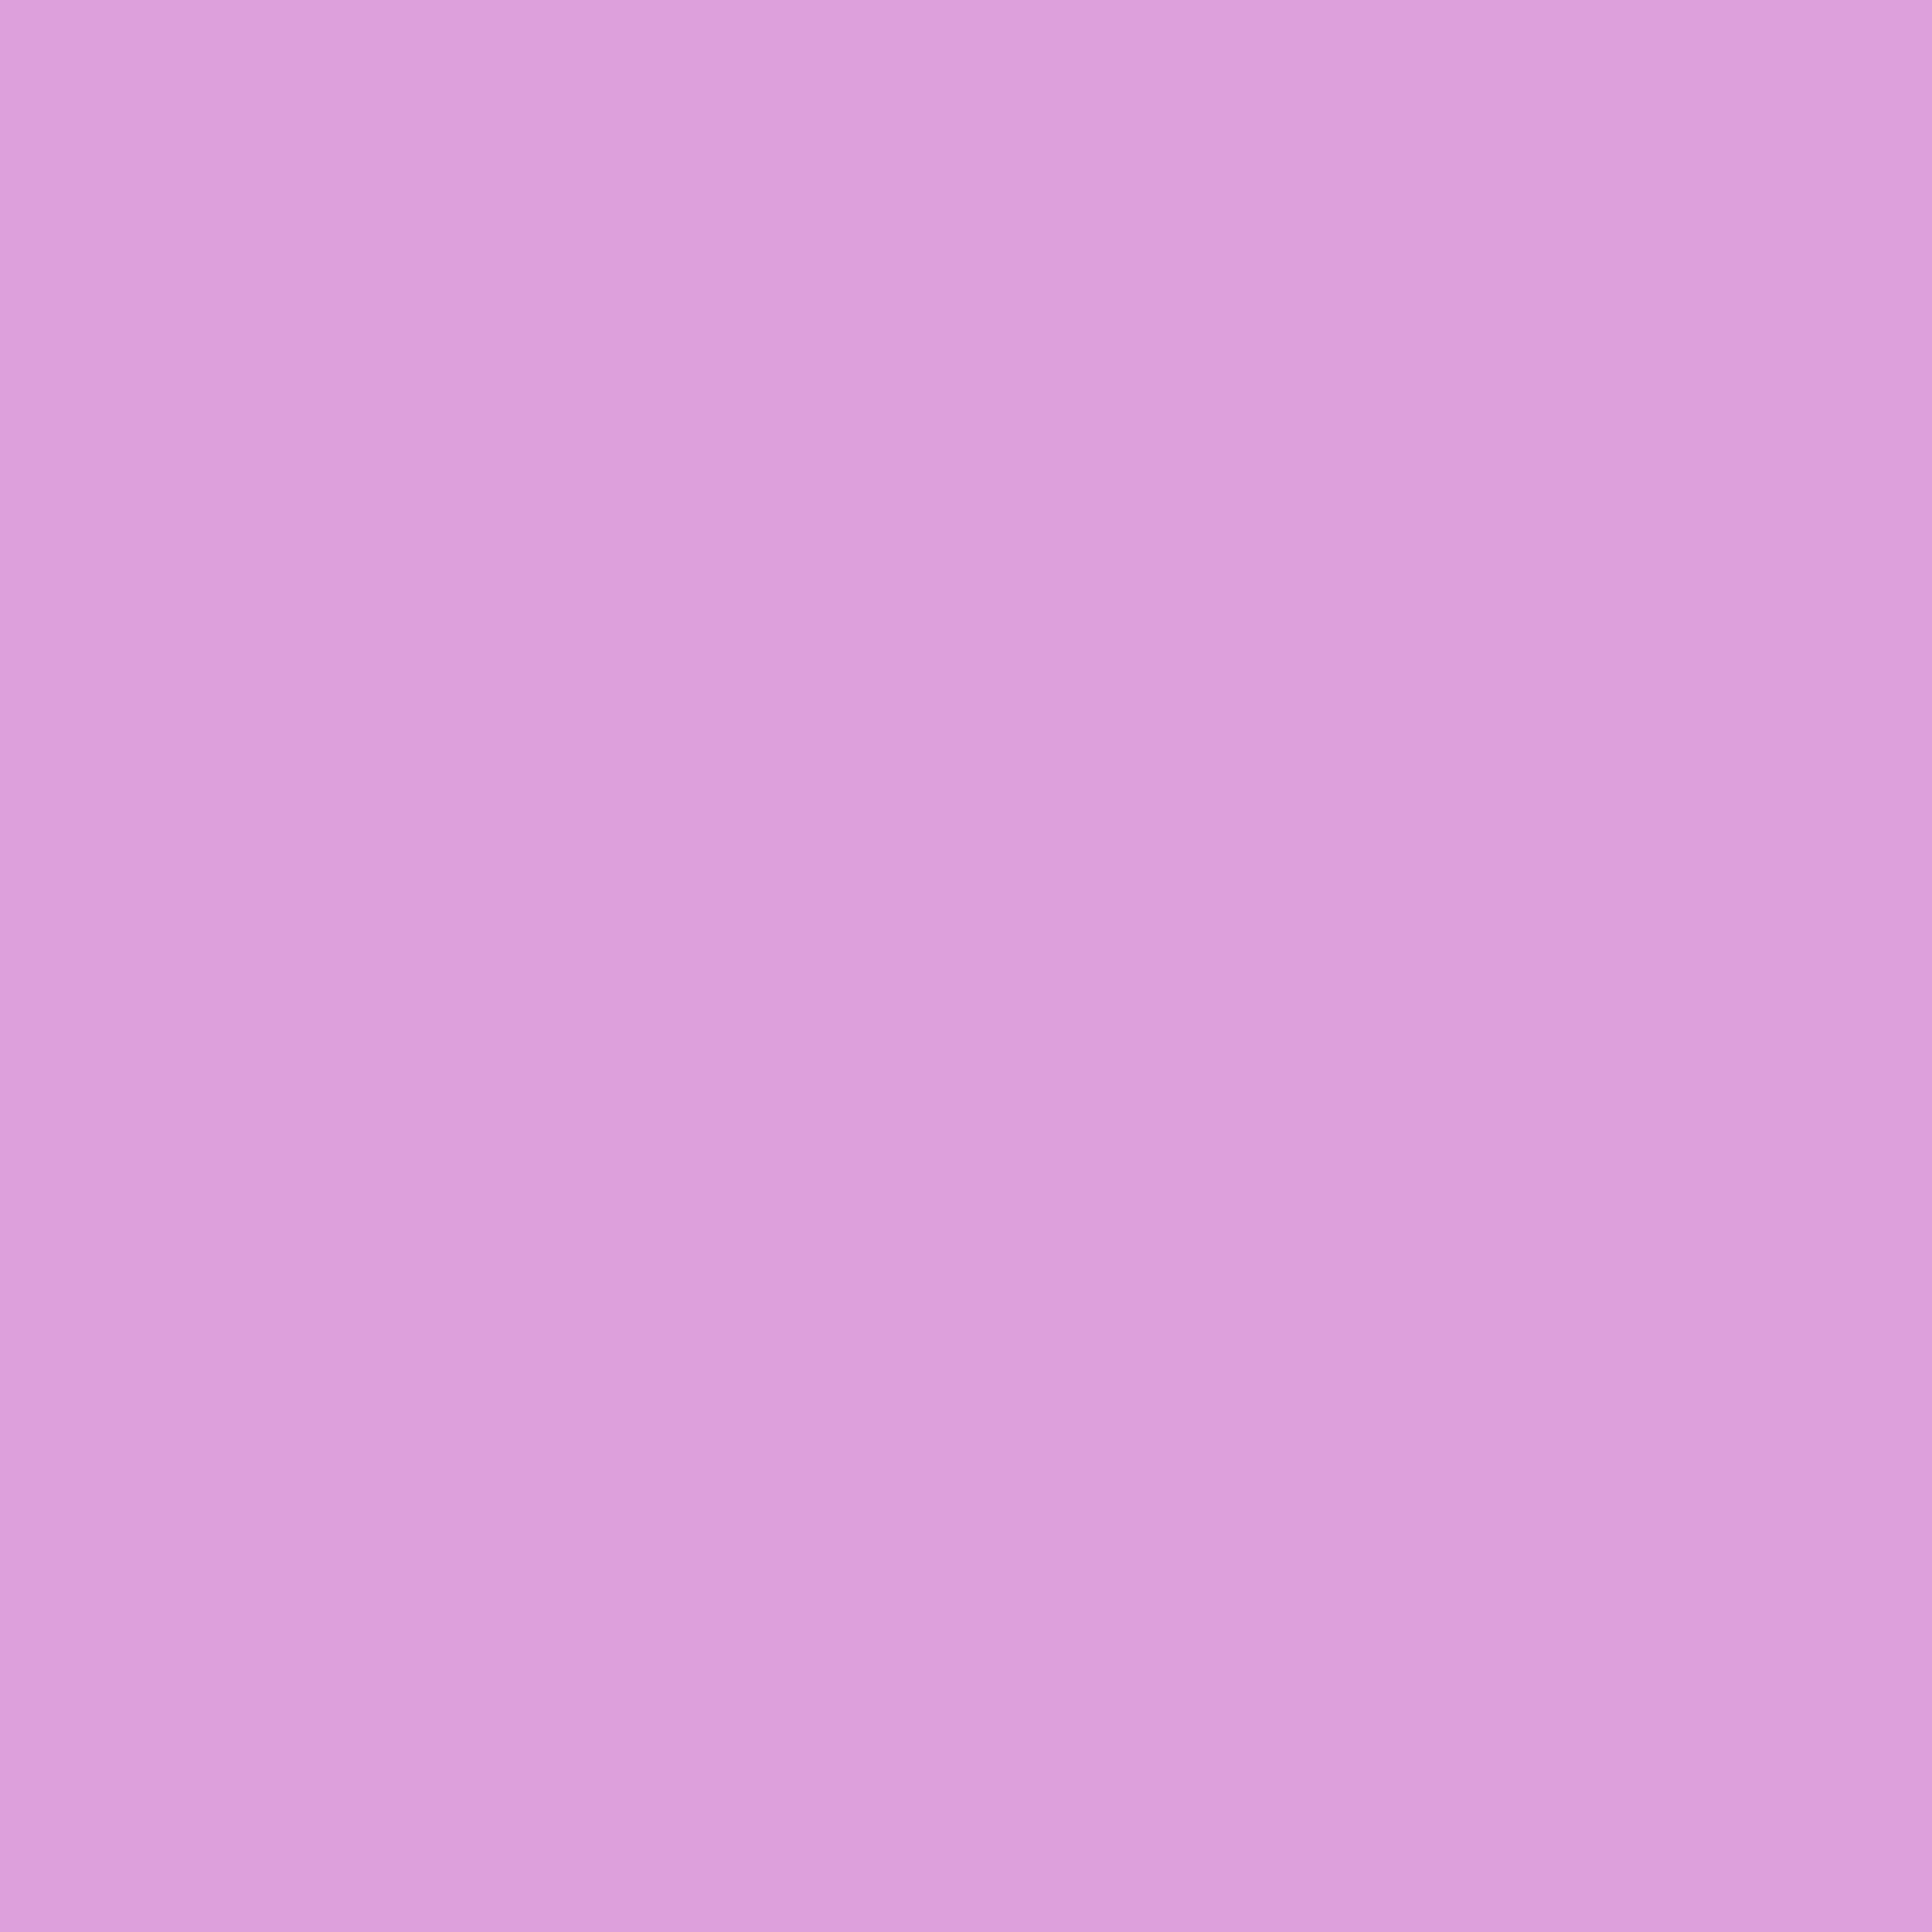 2732x2732 Plum Web Solid Color Background 2732x2732